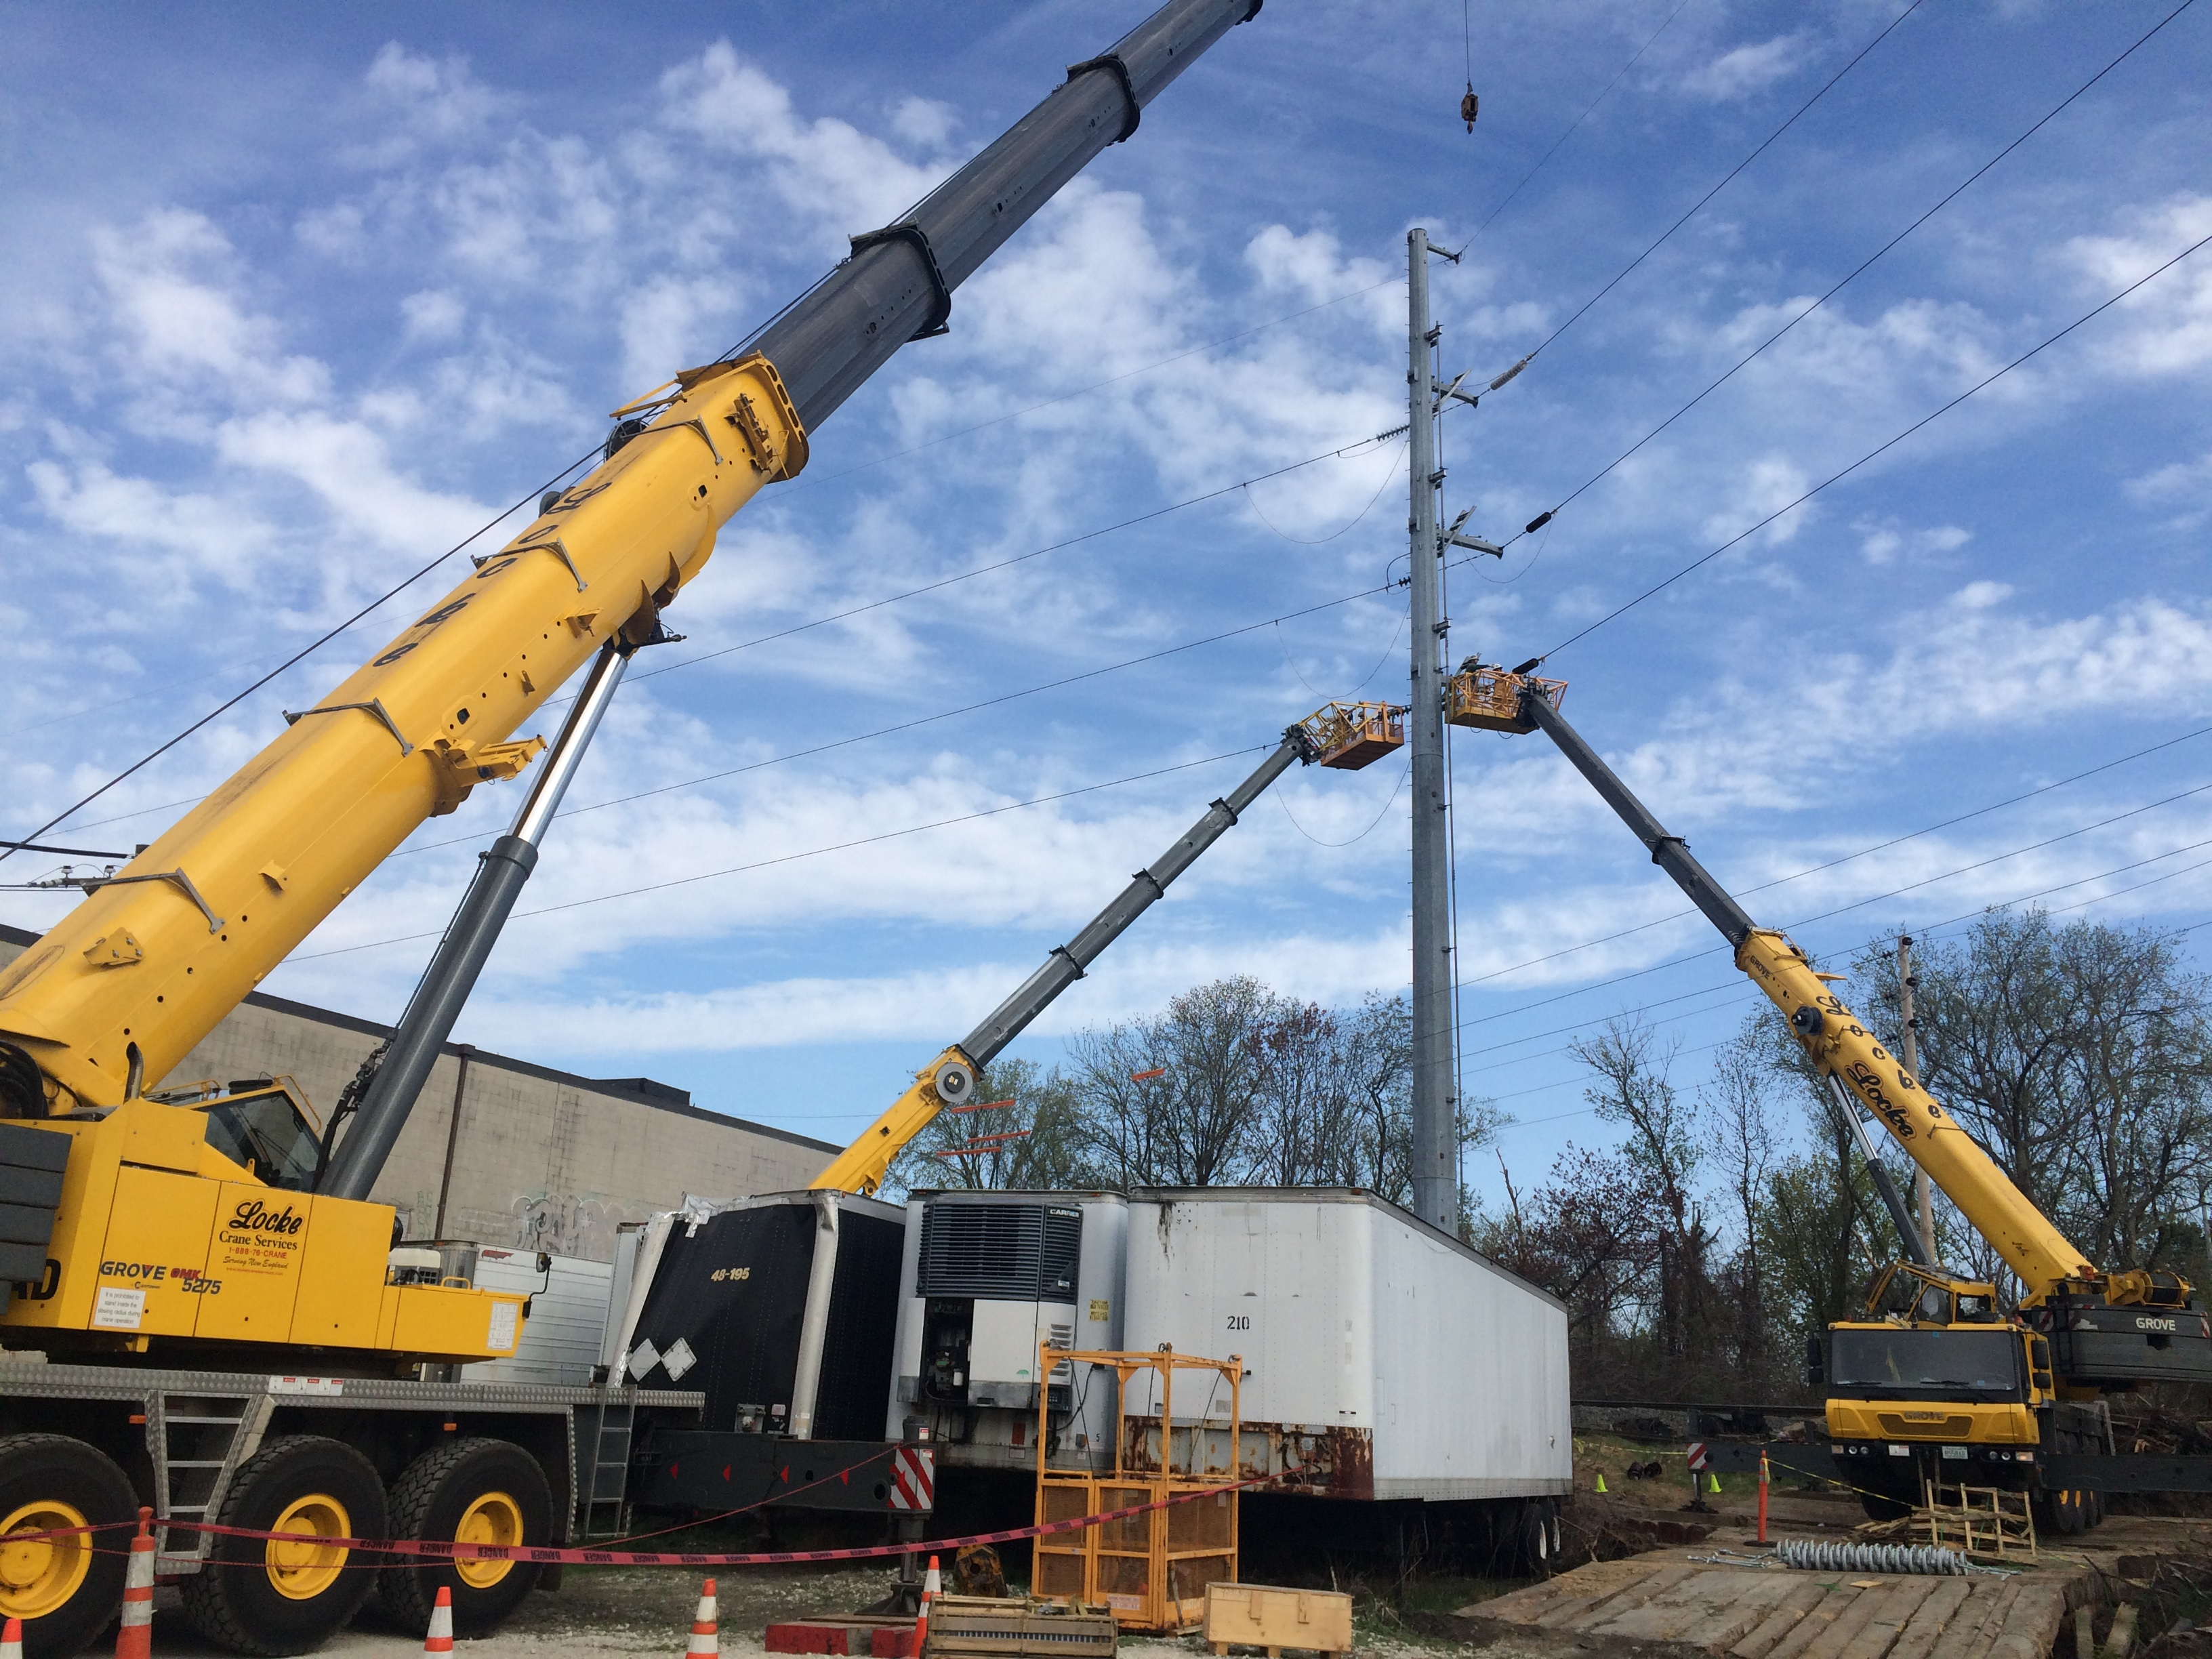 257 Ton Crane Service for Power Line